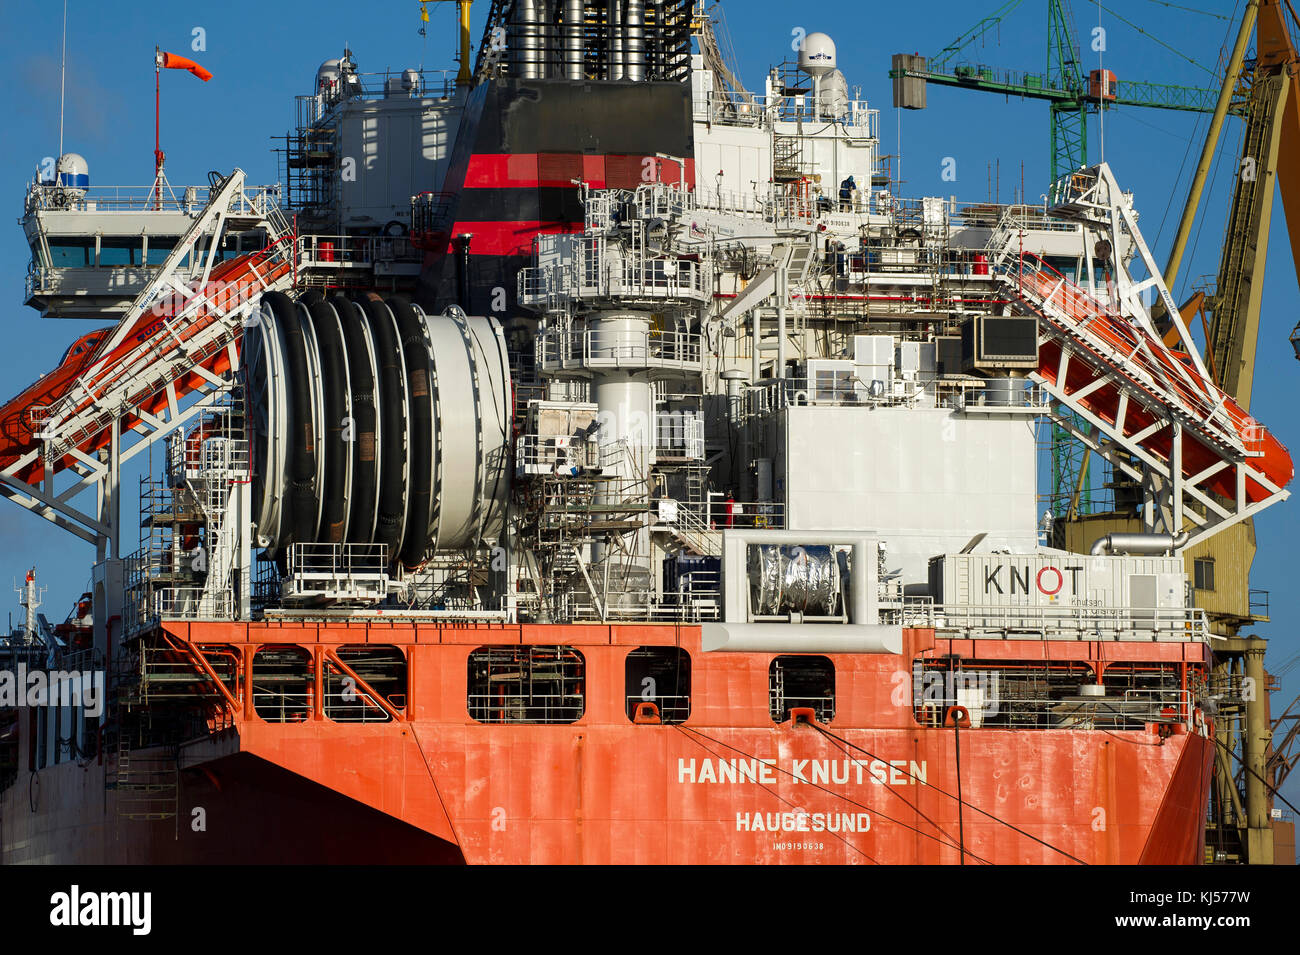 265 meter long Norwegian crude oil tanker Hanne Knutsen is under repair conversion to FSO Floating Storage and Offloading Unit in Remontowa Shipyar & 265 meter long Norwegian crude oil tanker Hanne Knutsen is under ...